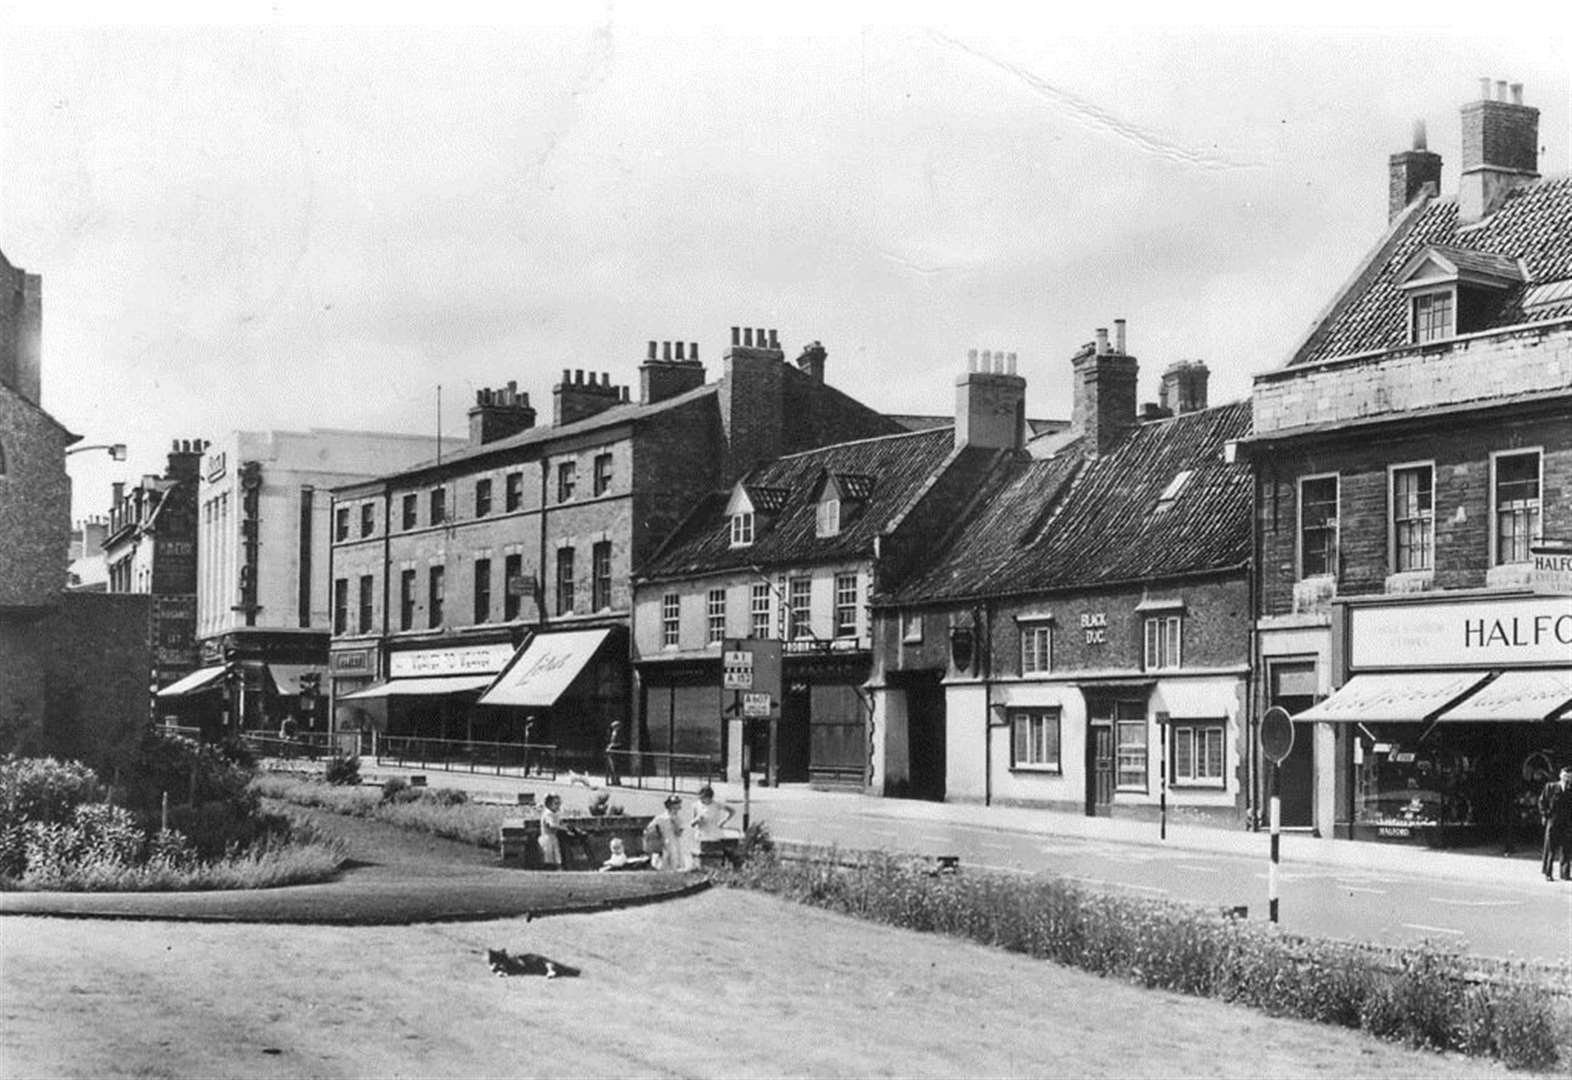 This week's Memory Lane takes you back to Grantham in the 1950s and 1980s